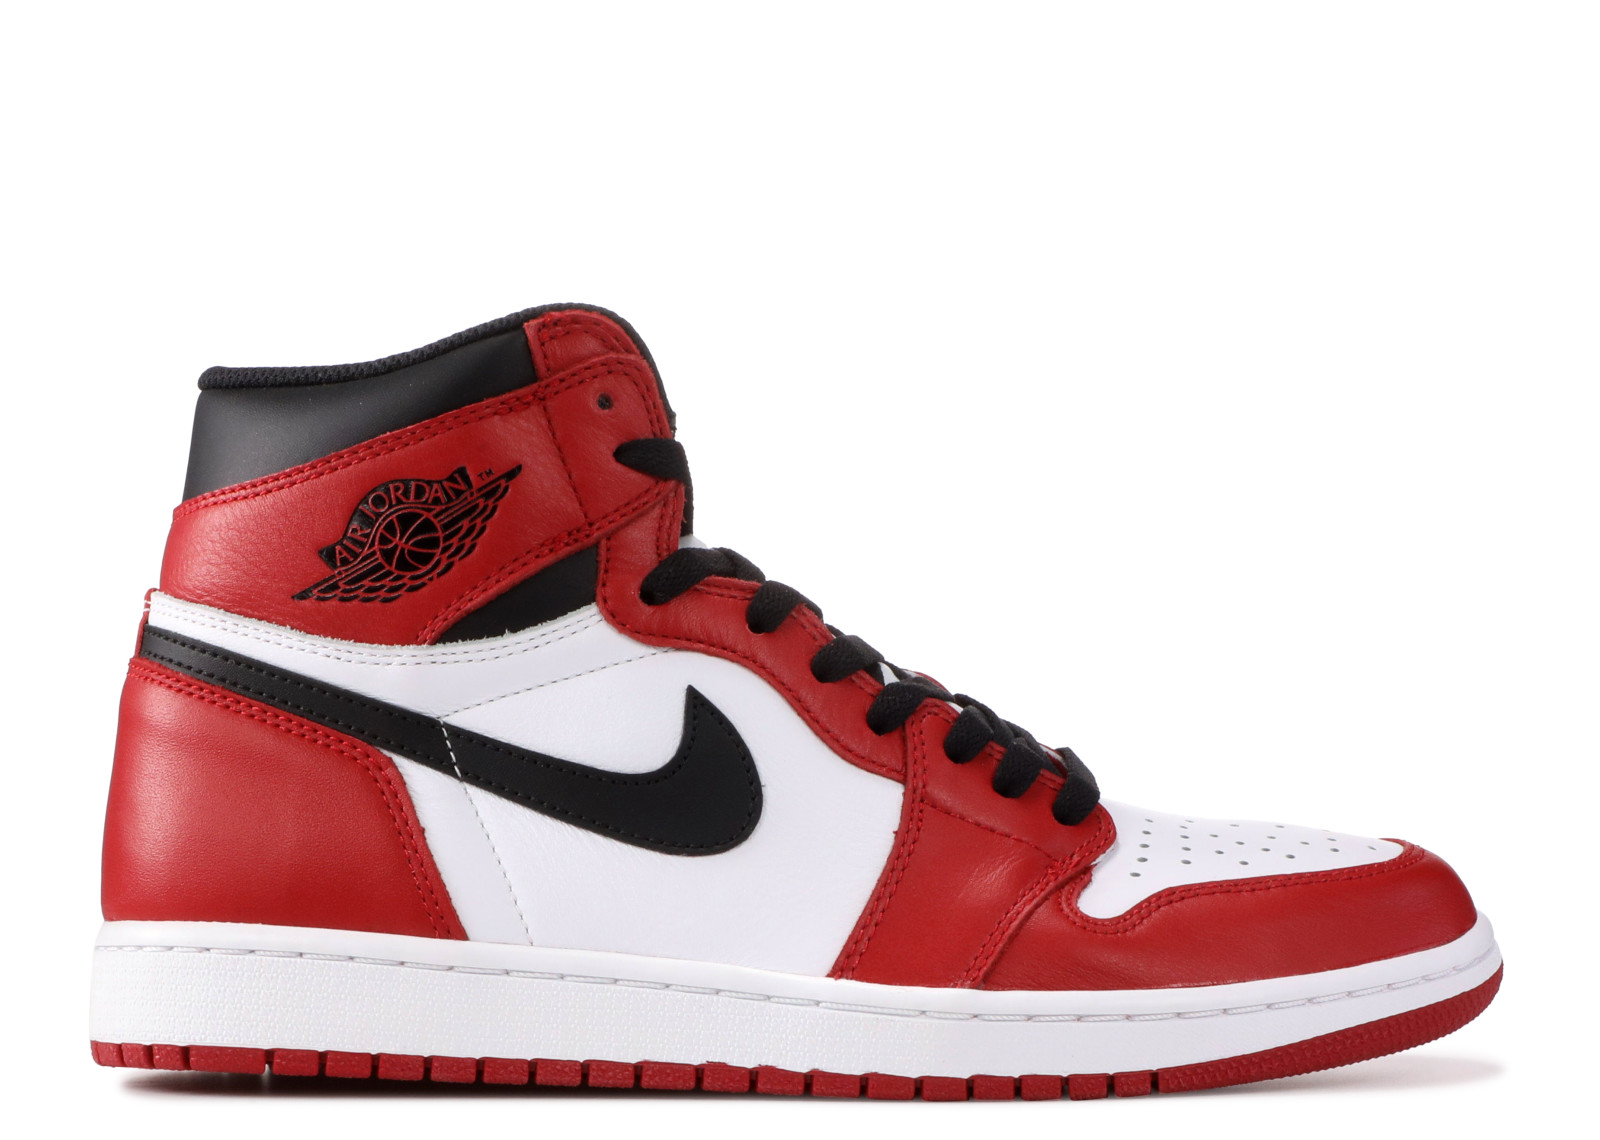 How to Spot Fake Air Jordan 1